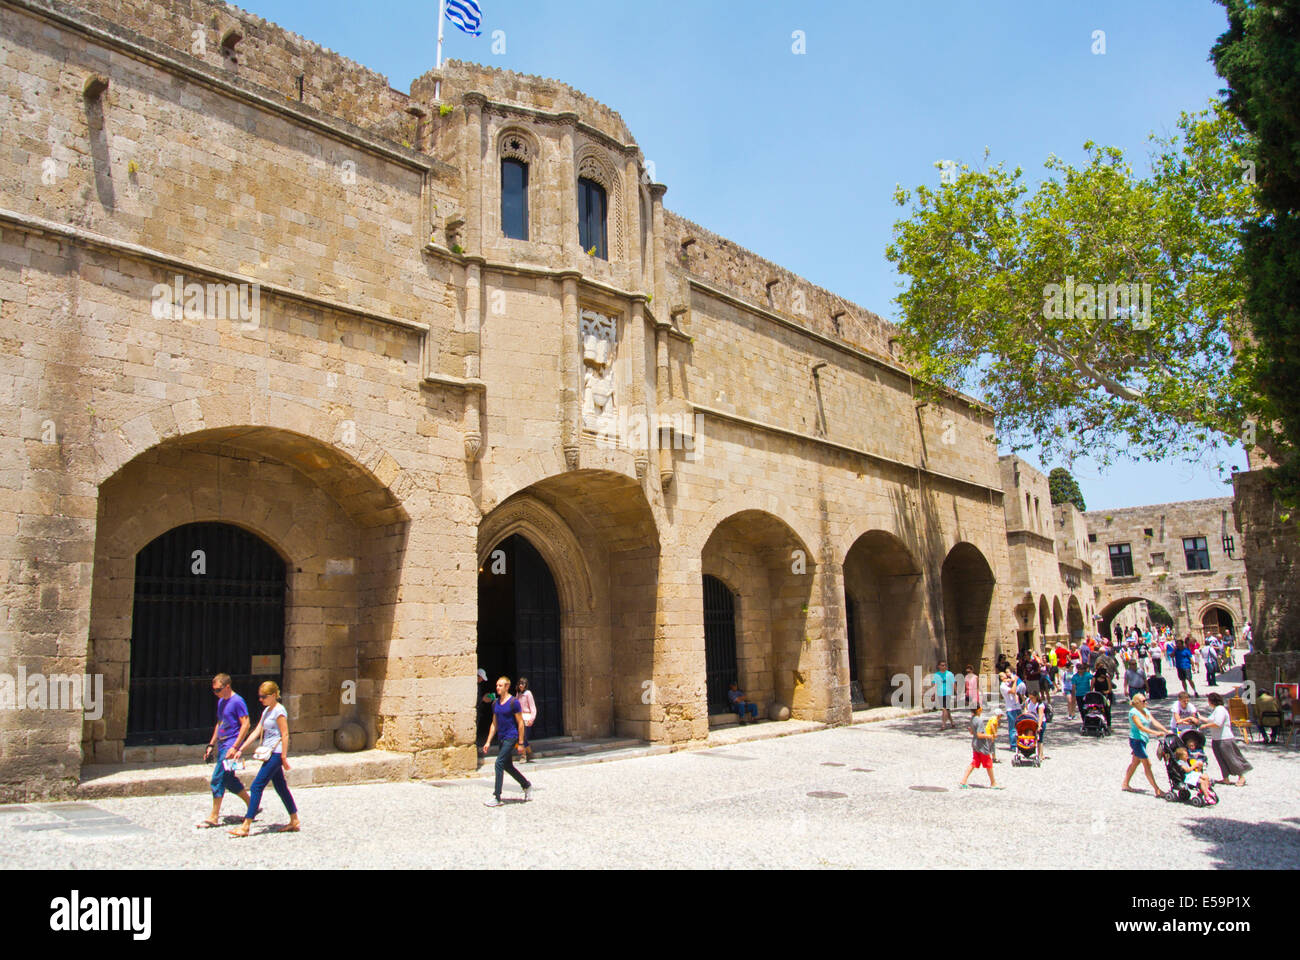 Archeology museum, Apellou street, old town, Rhodes town, Rhodes island, Dodecanese islands, Greece, Europe - Stock Image